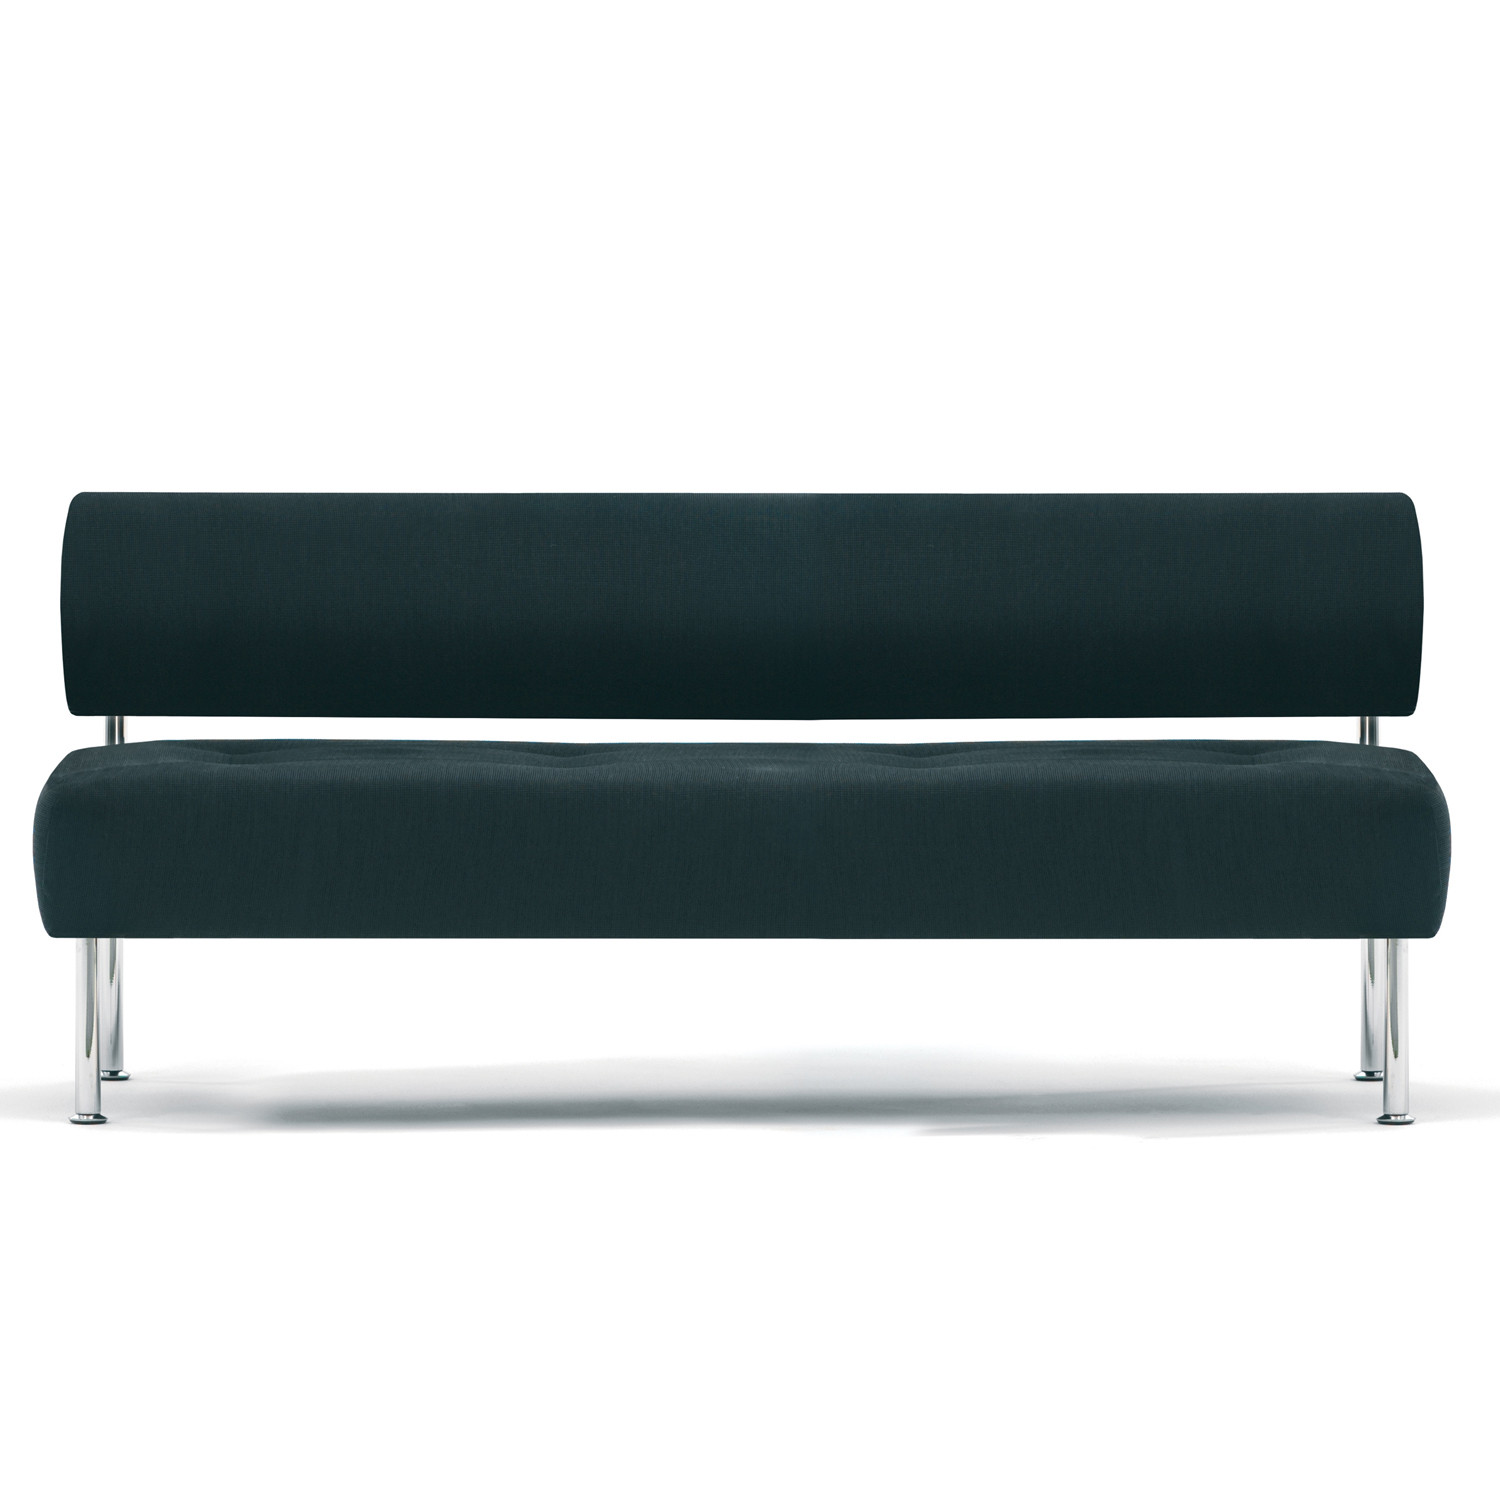 Koko Sofa Bench Front View